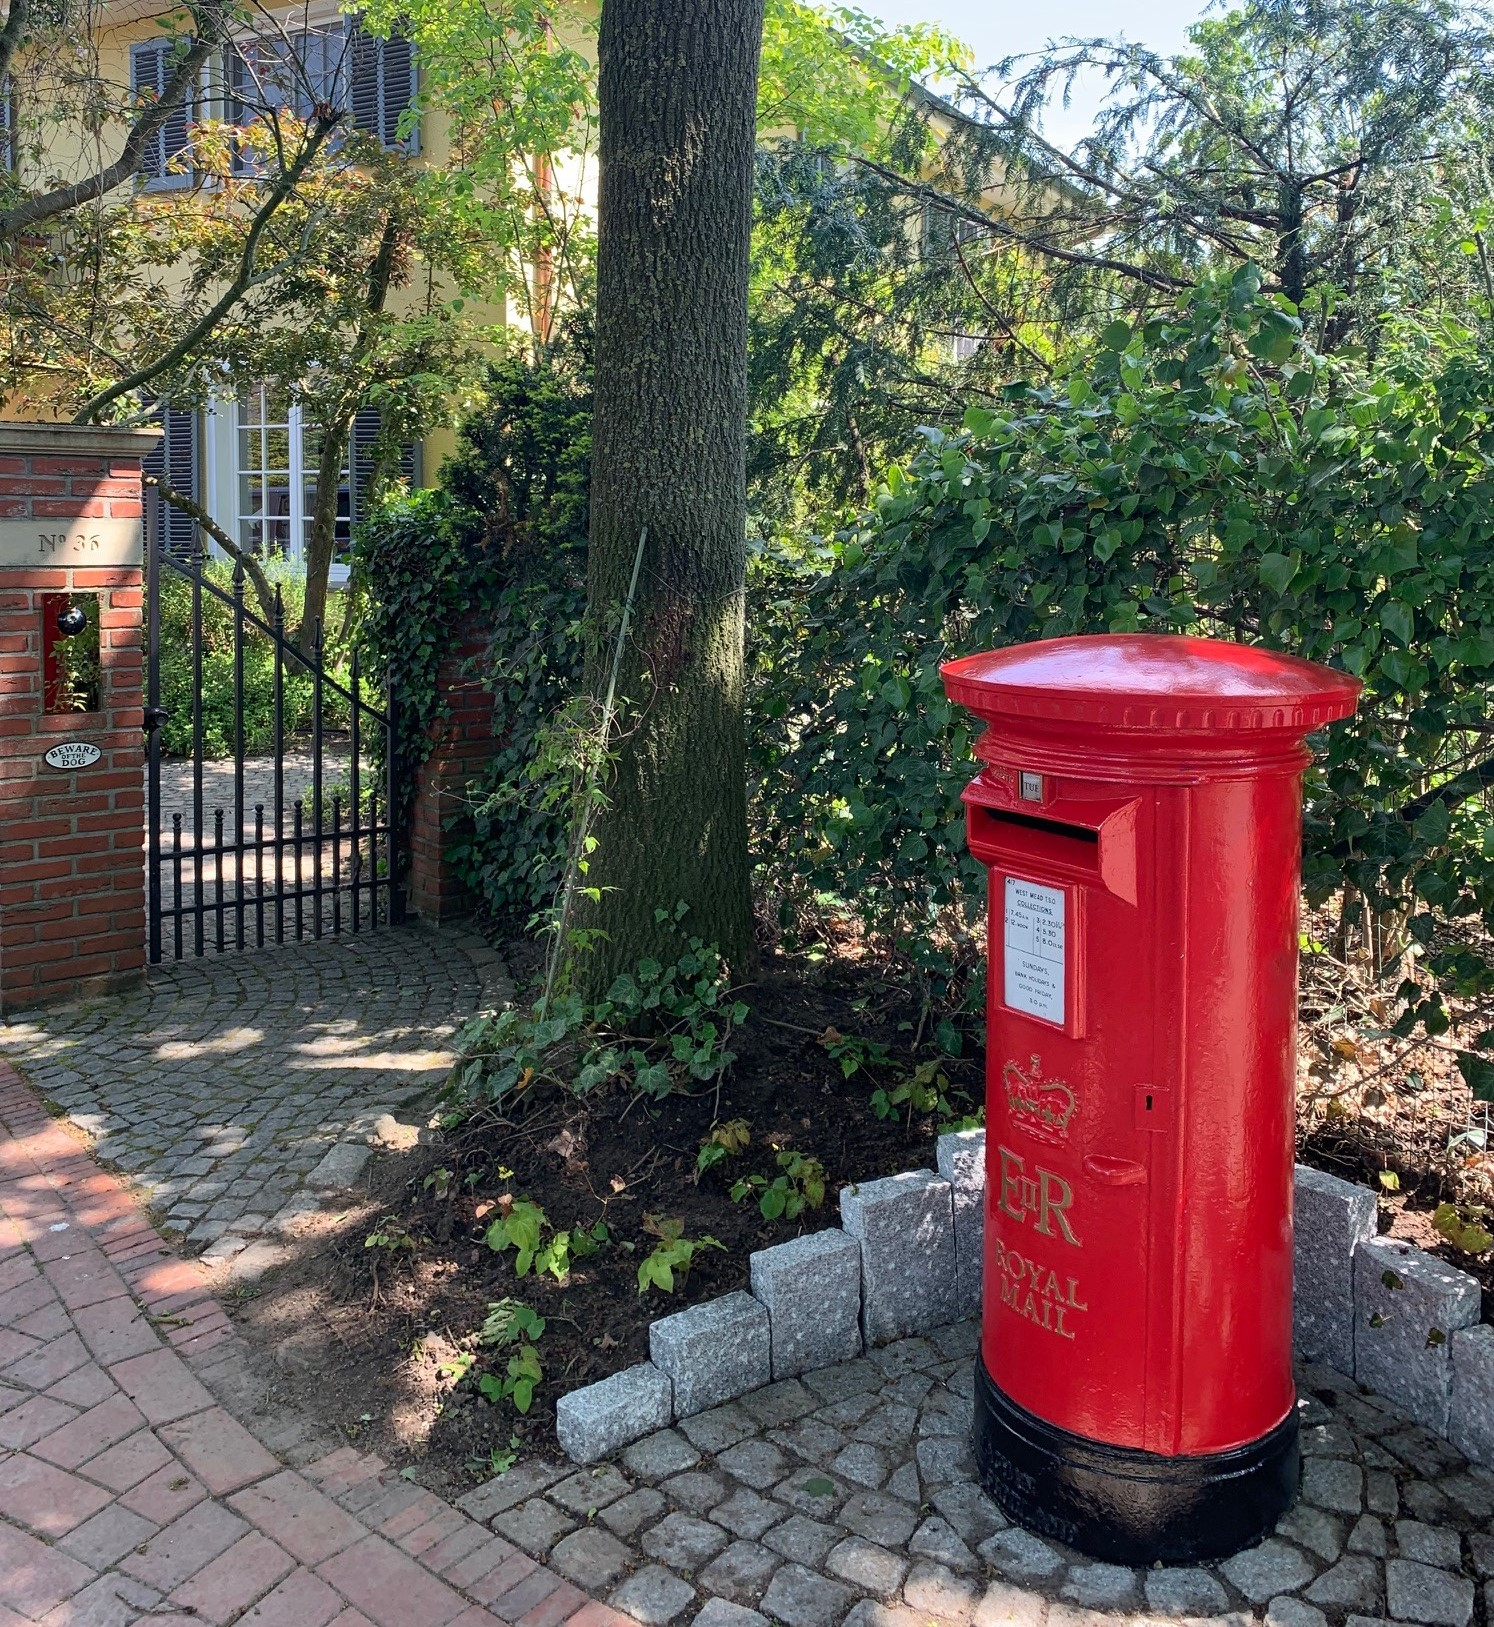 Antique Royal Mail pillar boxes and post boxes available at UKAA. Genuine British letter boxes can be used in the USA for your own post and mail